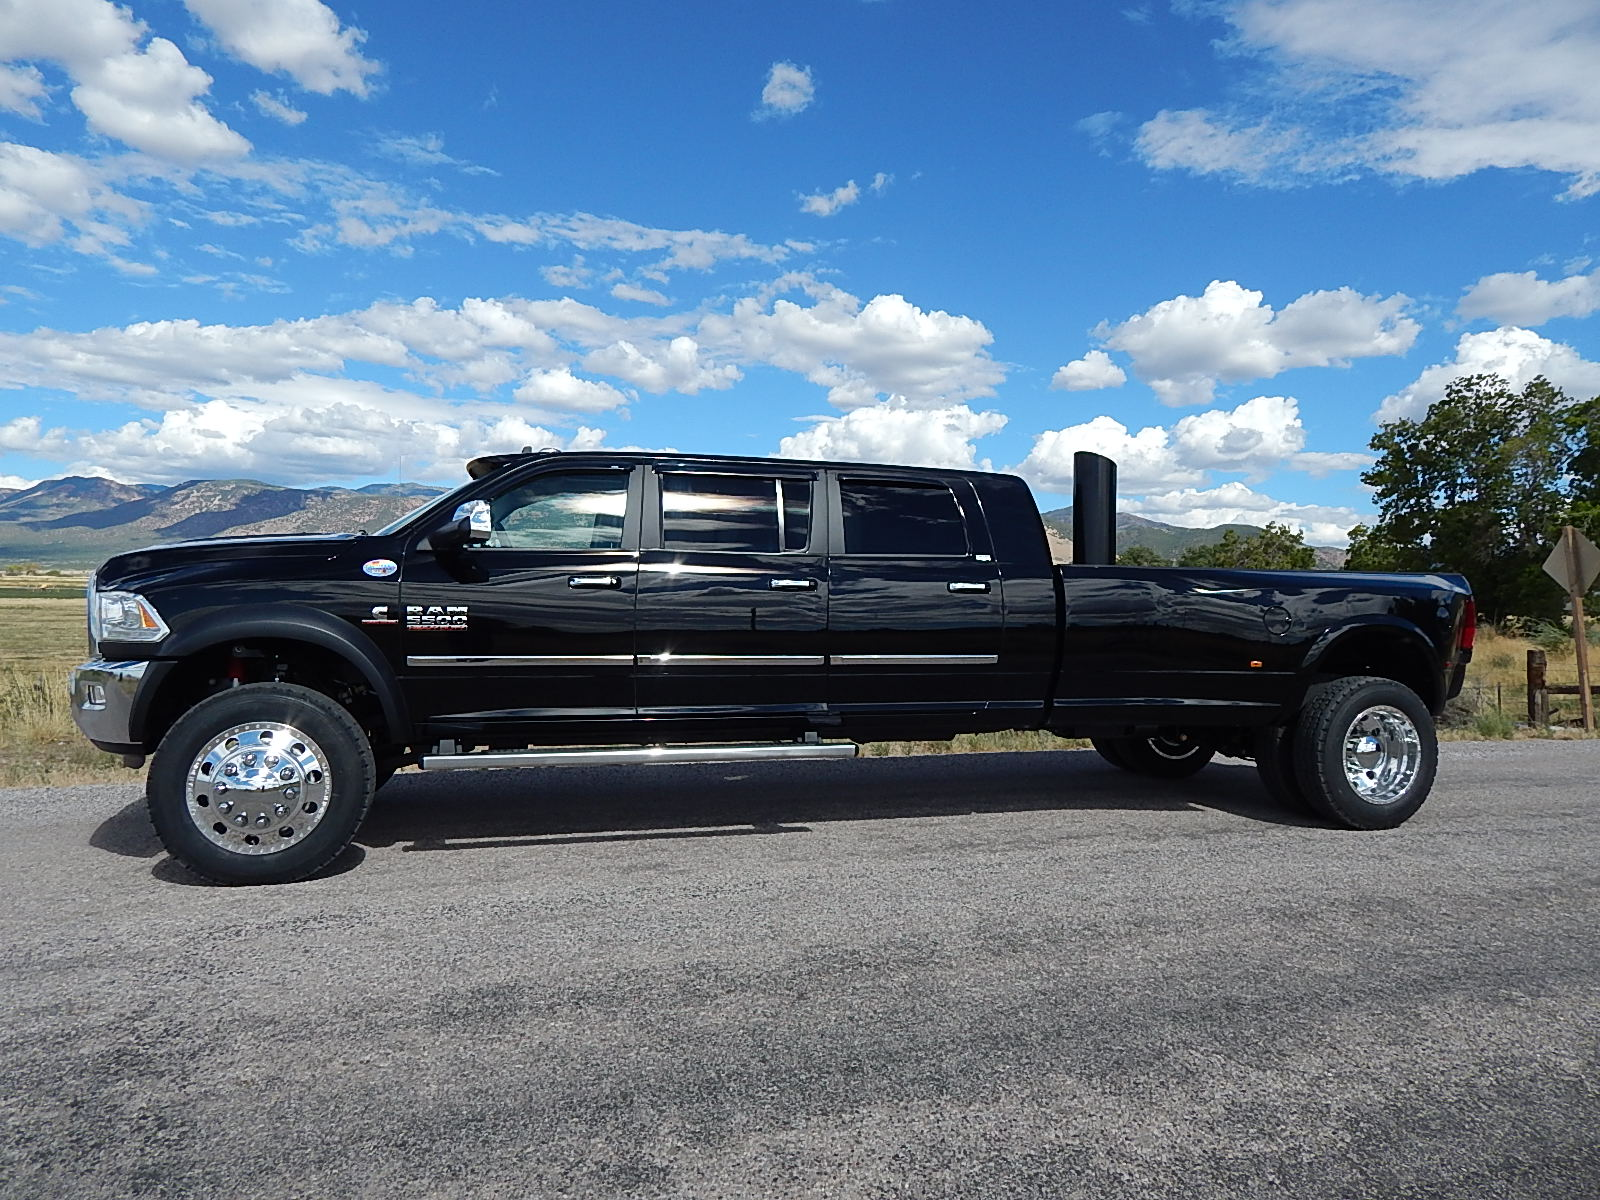 Ram Dually Wheels >> MEGA X 2 6 door Dodge 6 Door Ford 6 door Mega Cab Six door ExcursionMEGA X 2